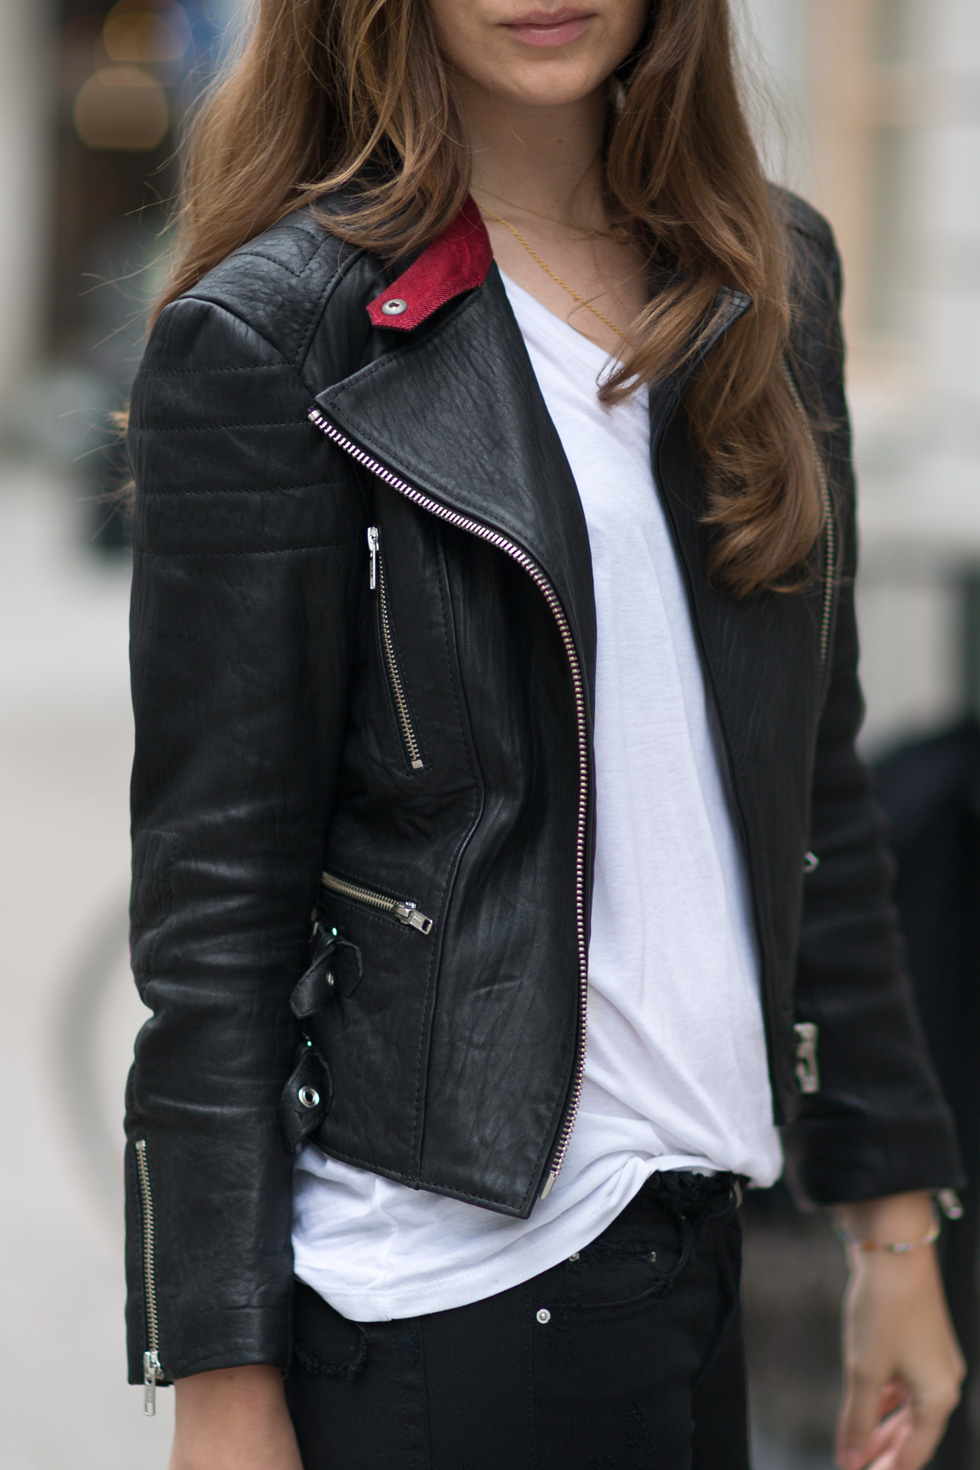 Stunning Leather Jackets Spotted In Spring 2014 - Just The ...